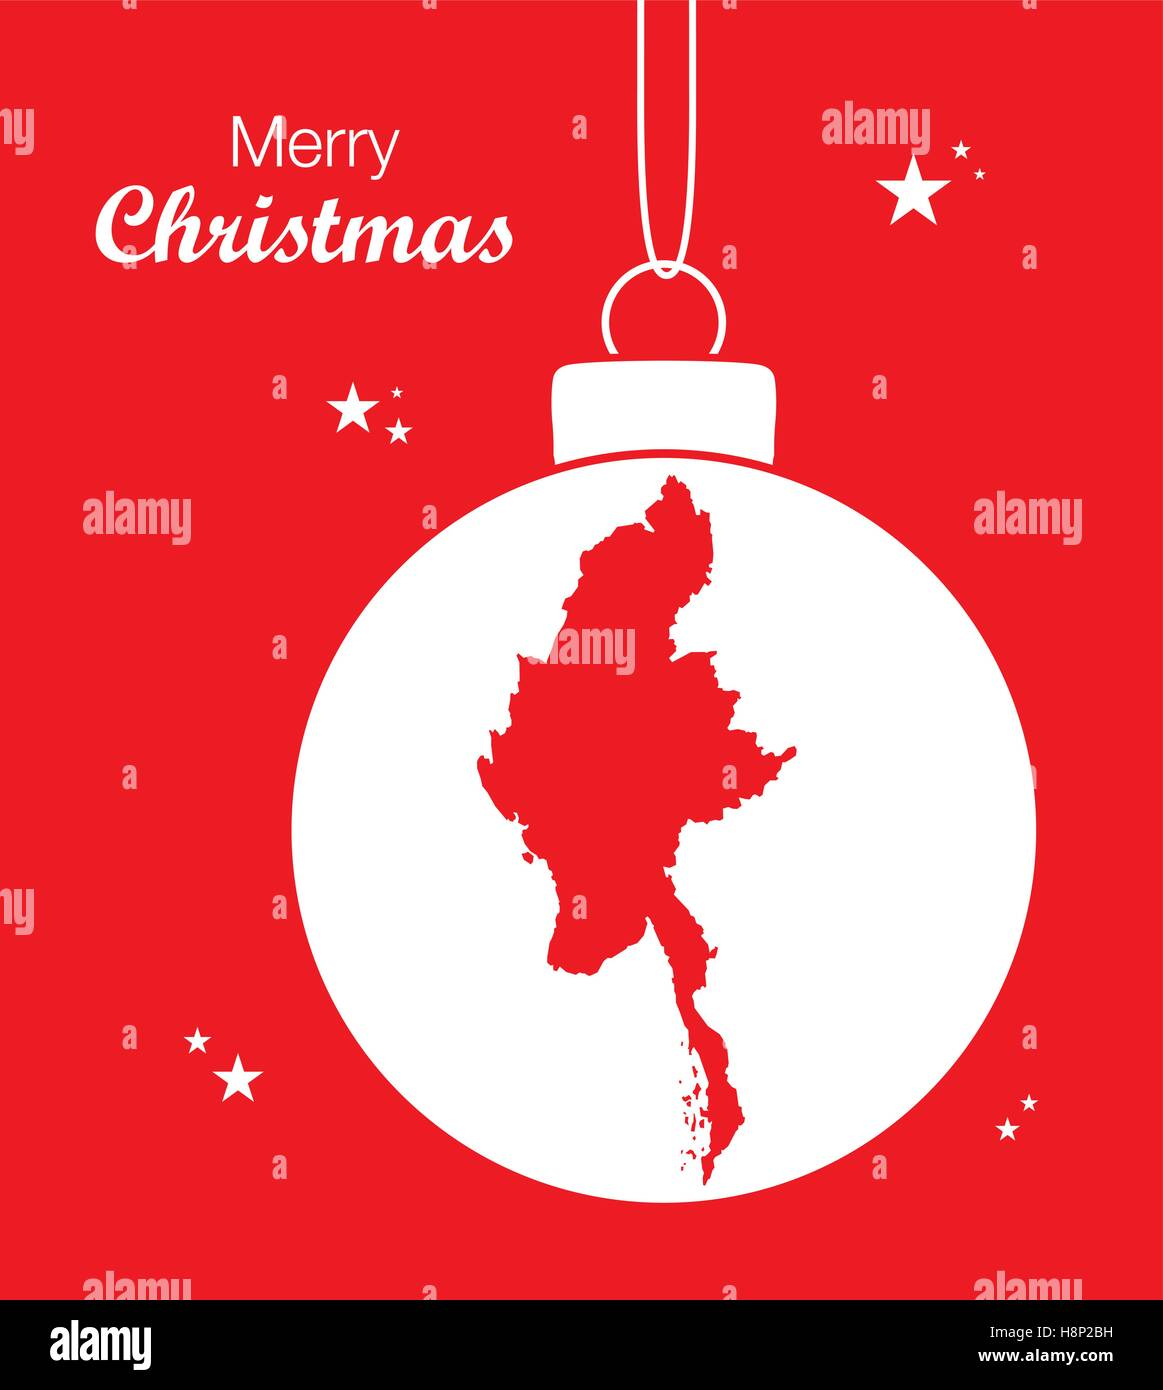 Merry Christmas illustration theme with map of Myanmar - Stock Vector